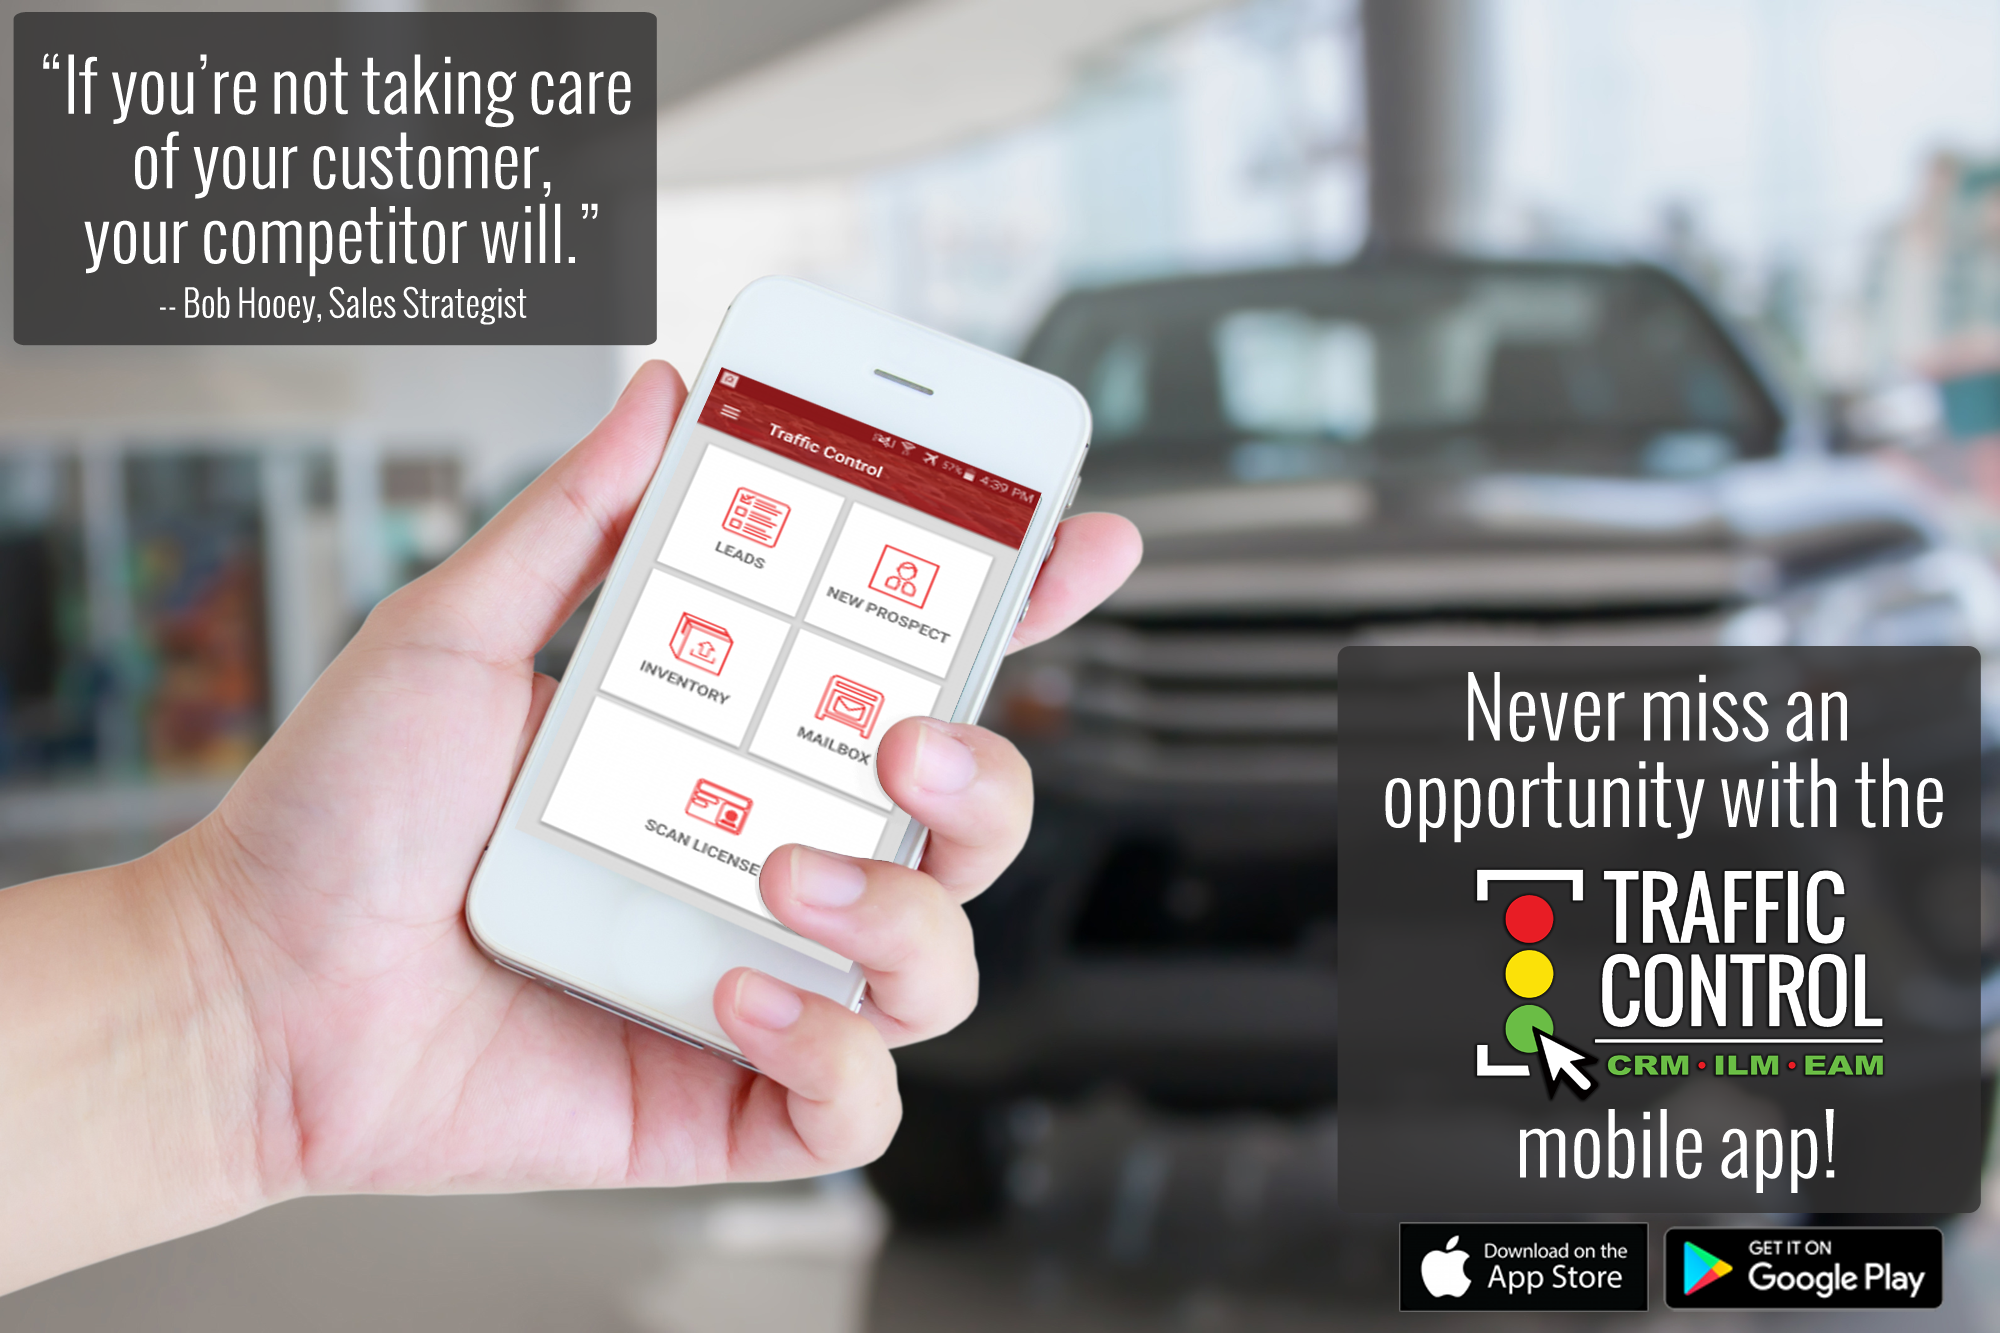 Traffic Control CRM For Auto Dealerships Mobile App